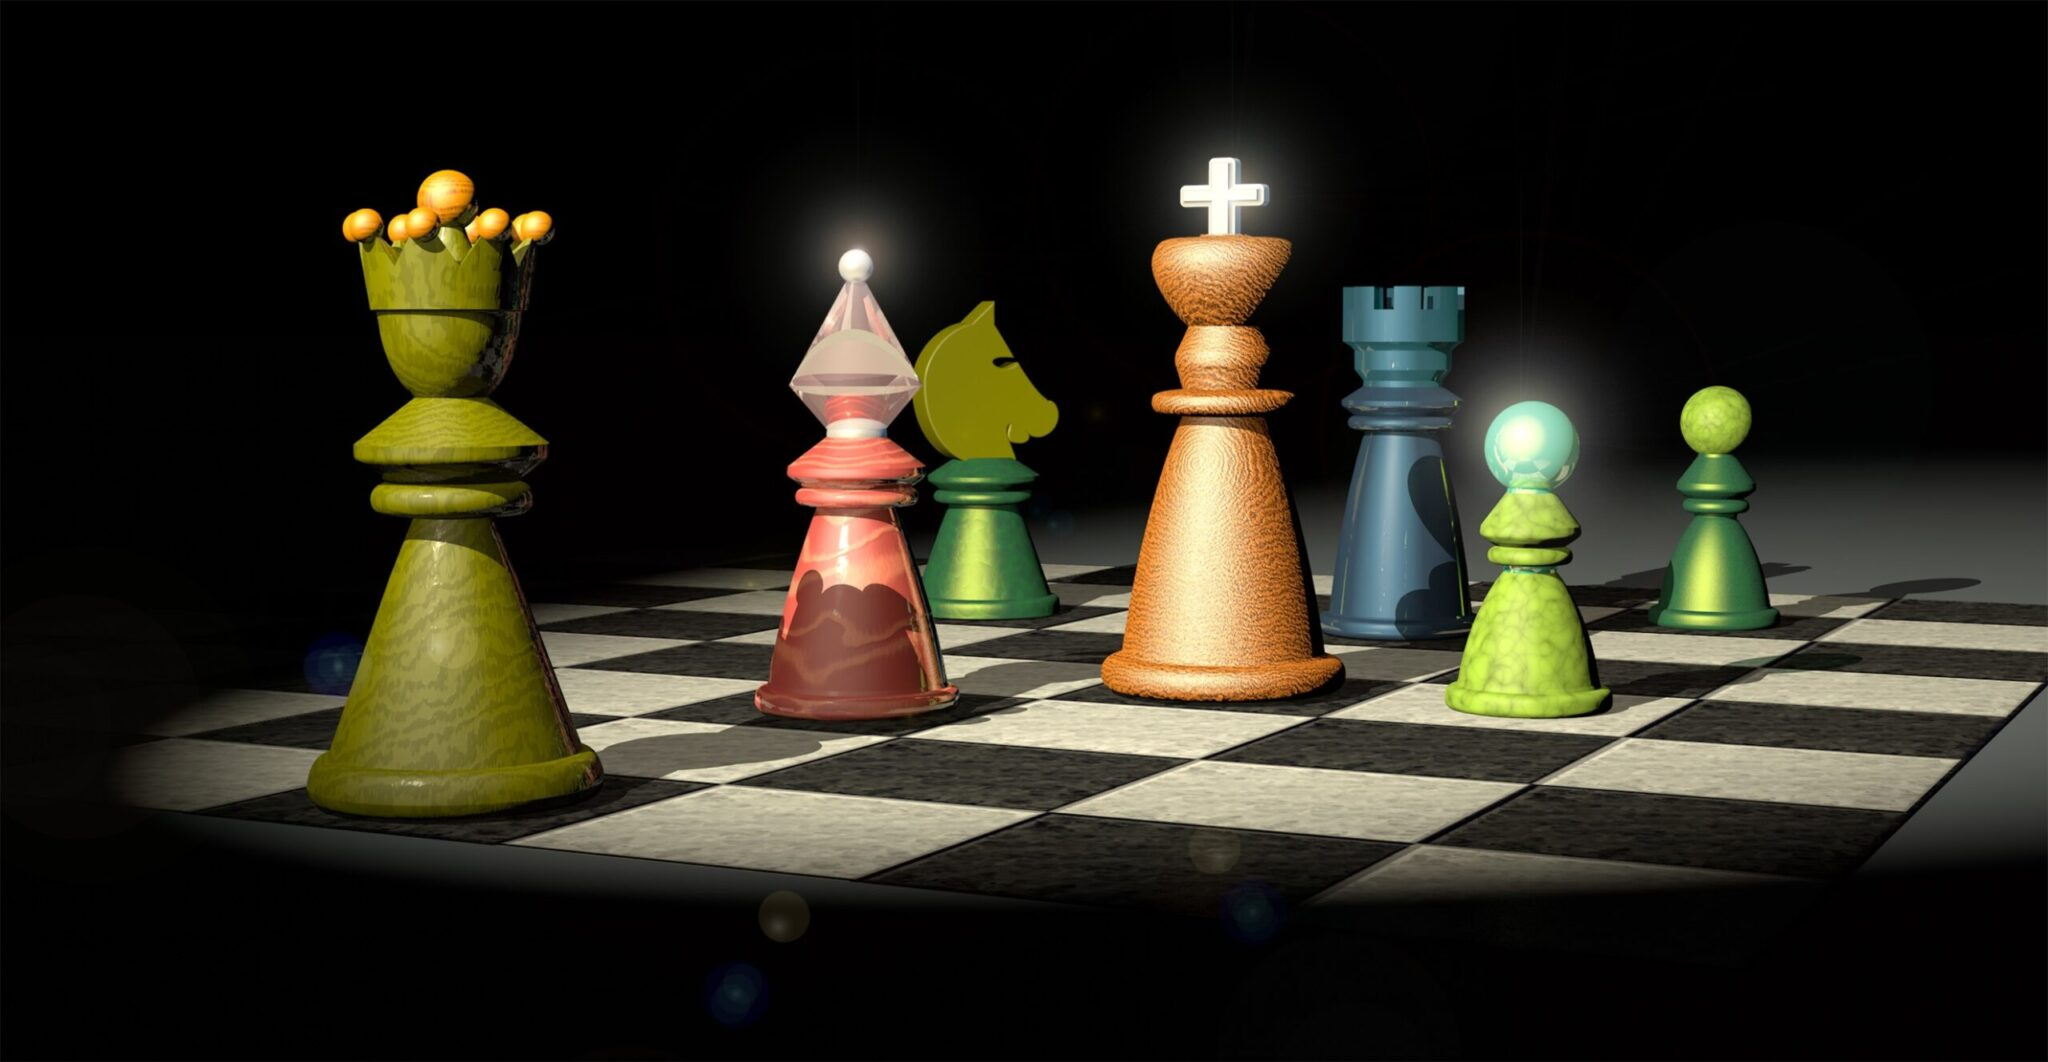 image of a chess board with 7 different colored pieces on the board to represent essentials for the game